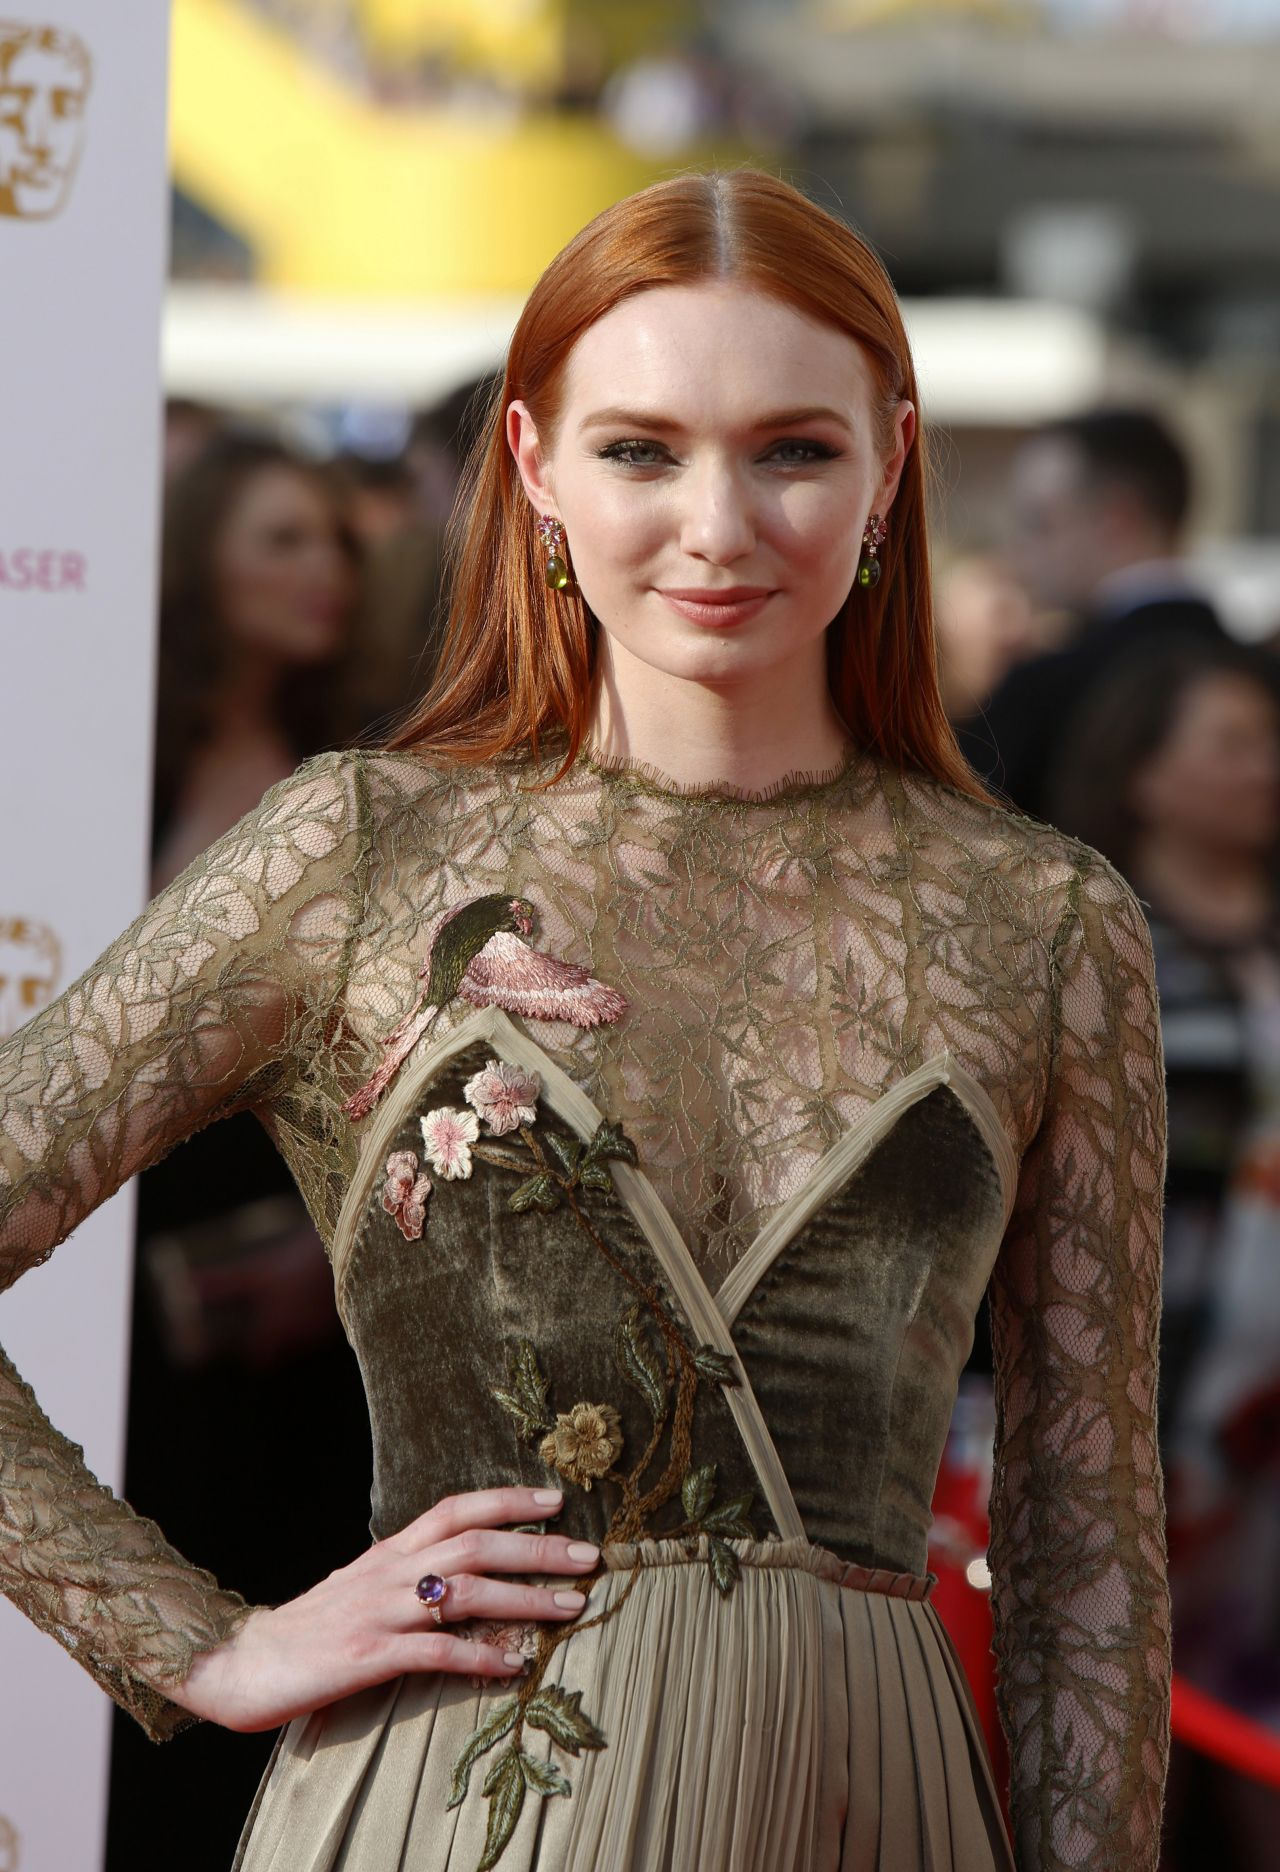 http://celebmafia.com/wp-content/uploads/2016/05/eleanor-tomlinson-british-academy-television-awards-baftas-2016-in-london-2.jpg